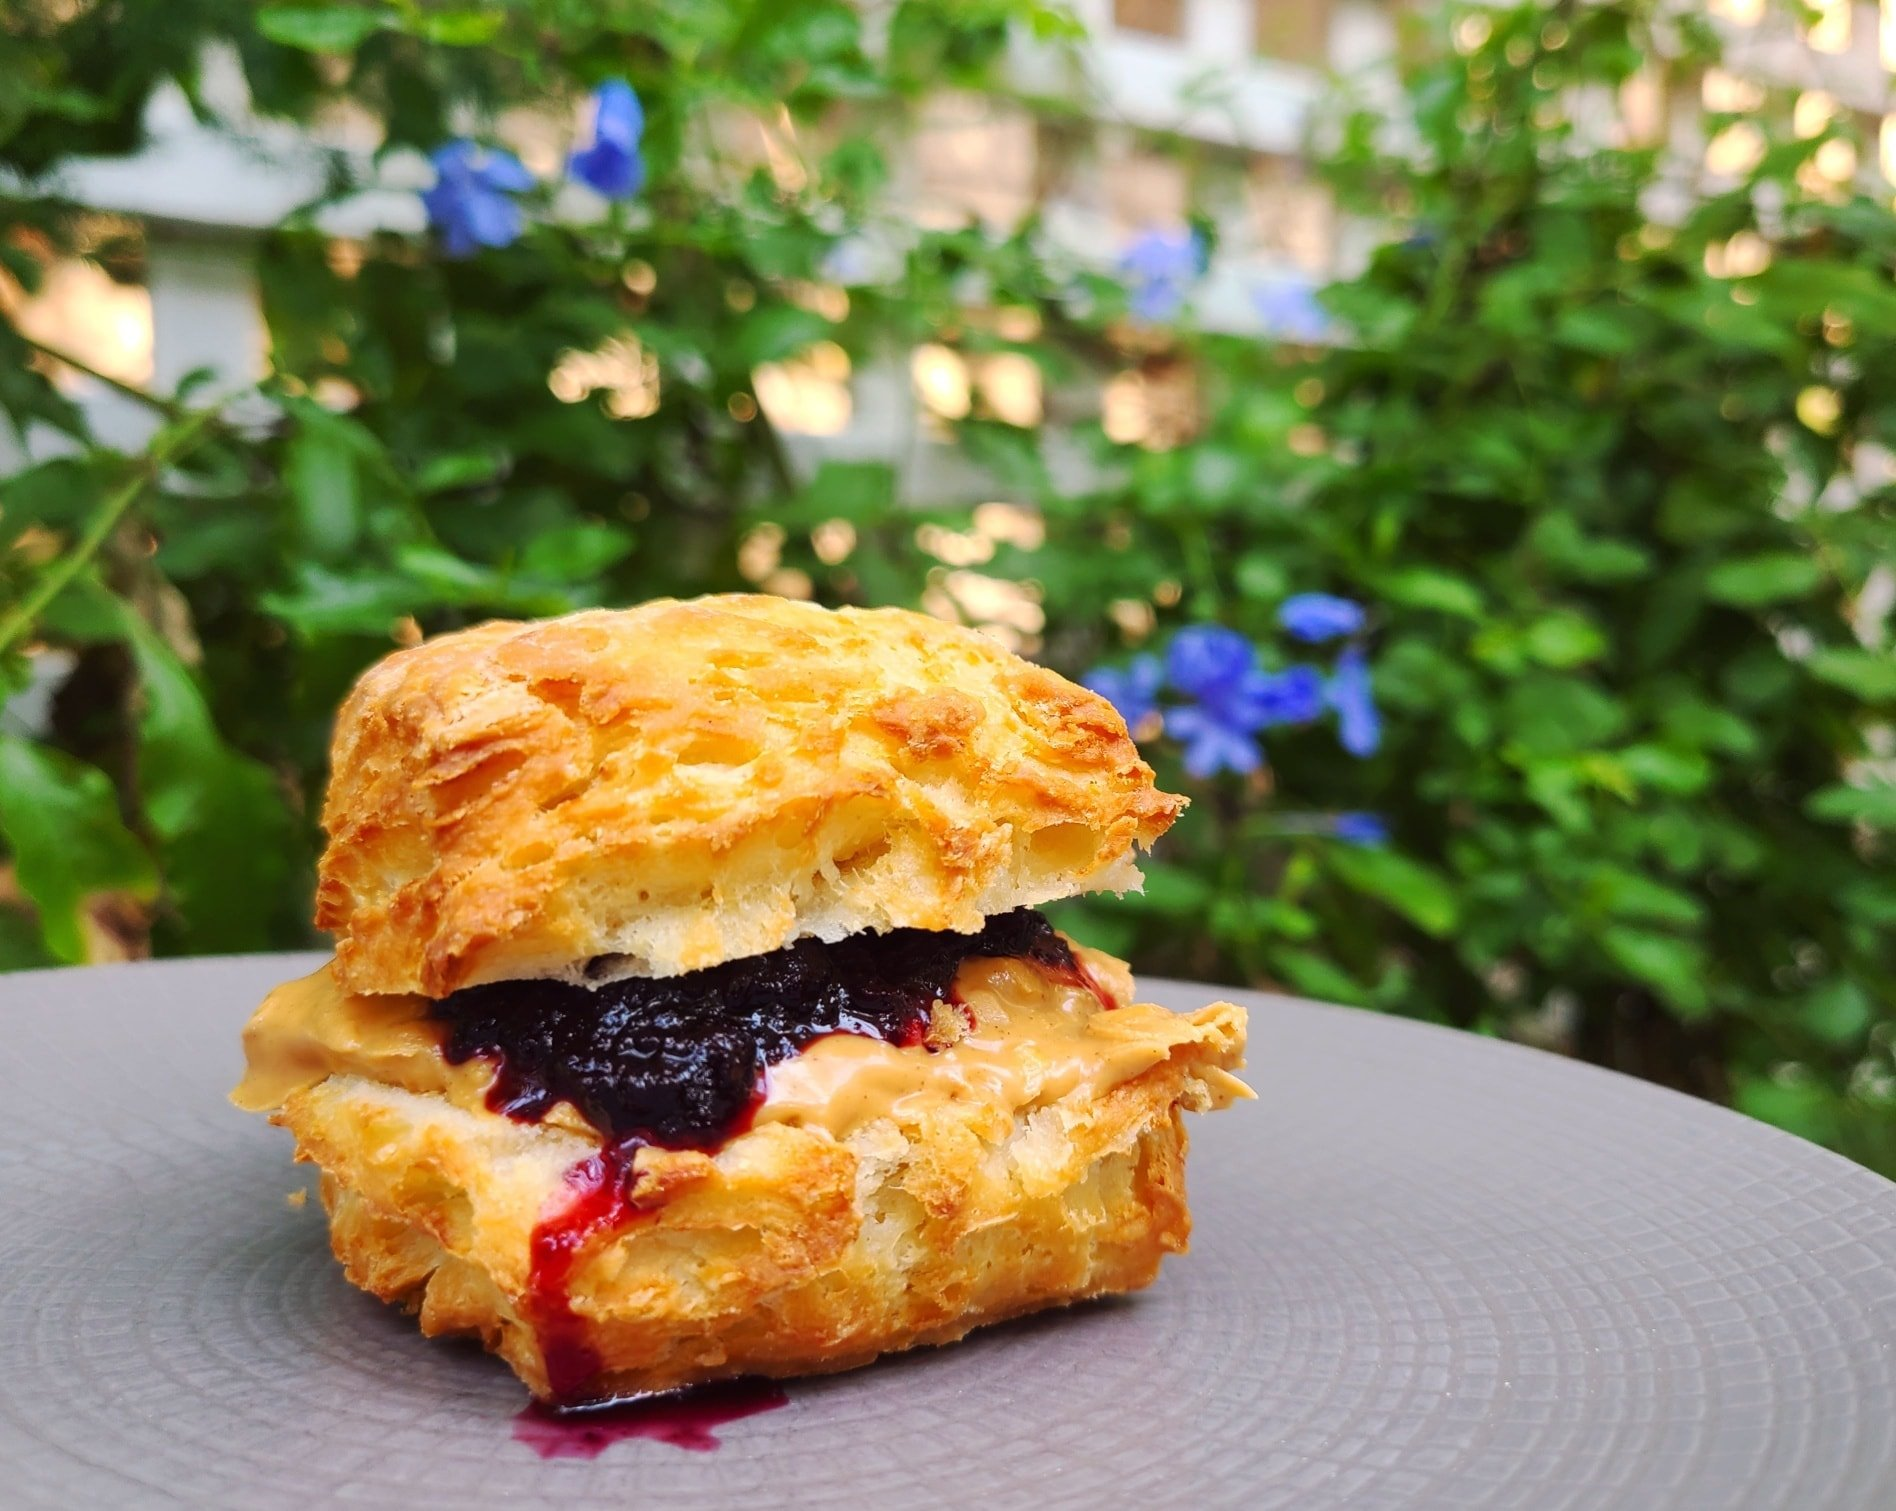 A peanut butter and blueberry jam biscuit sandwich from Little Ola's Biscuits